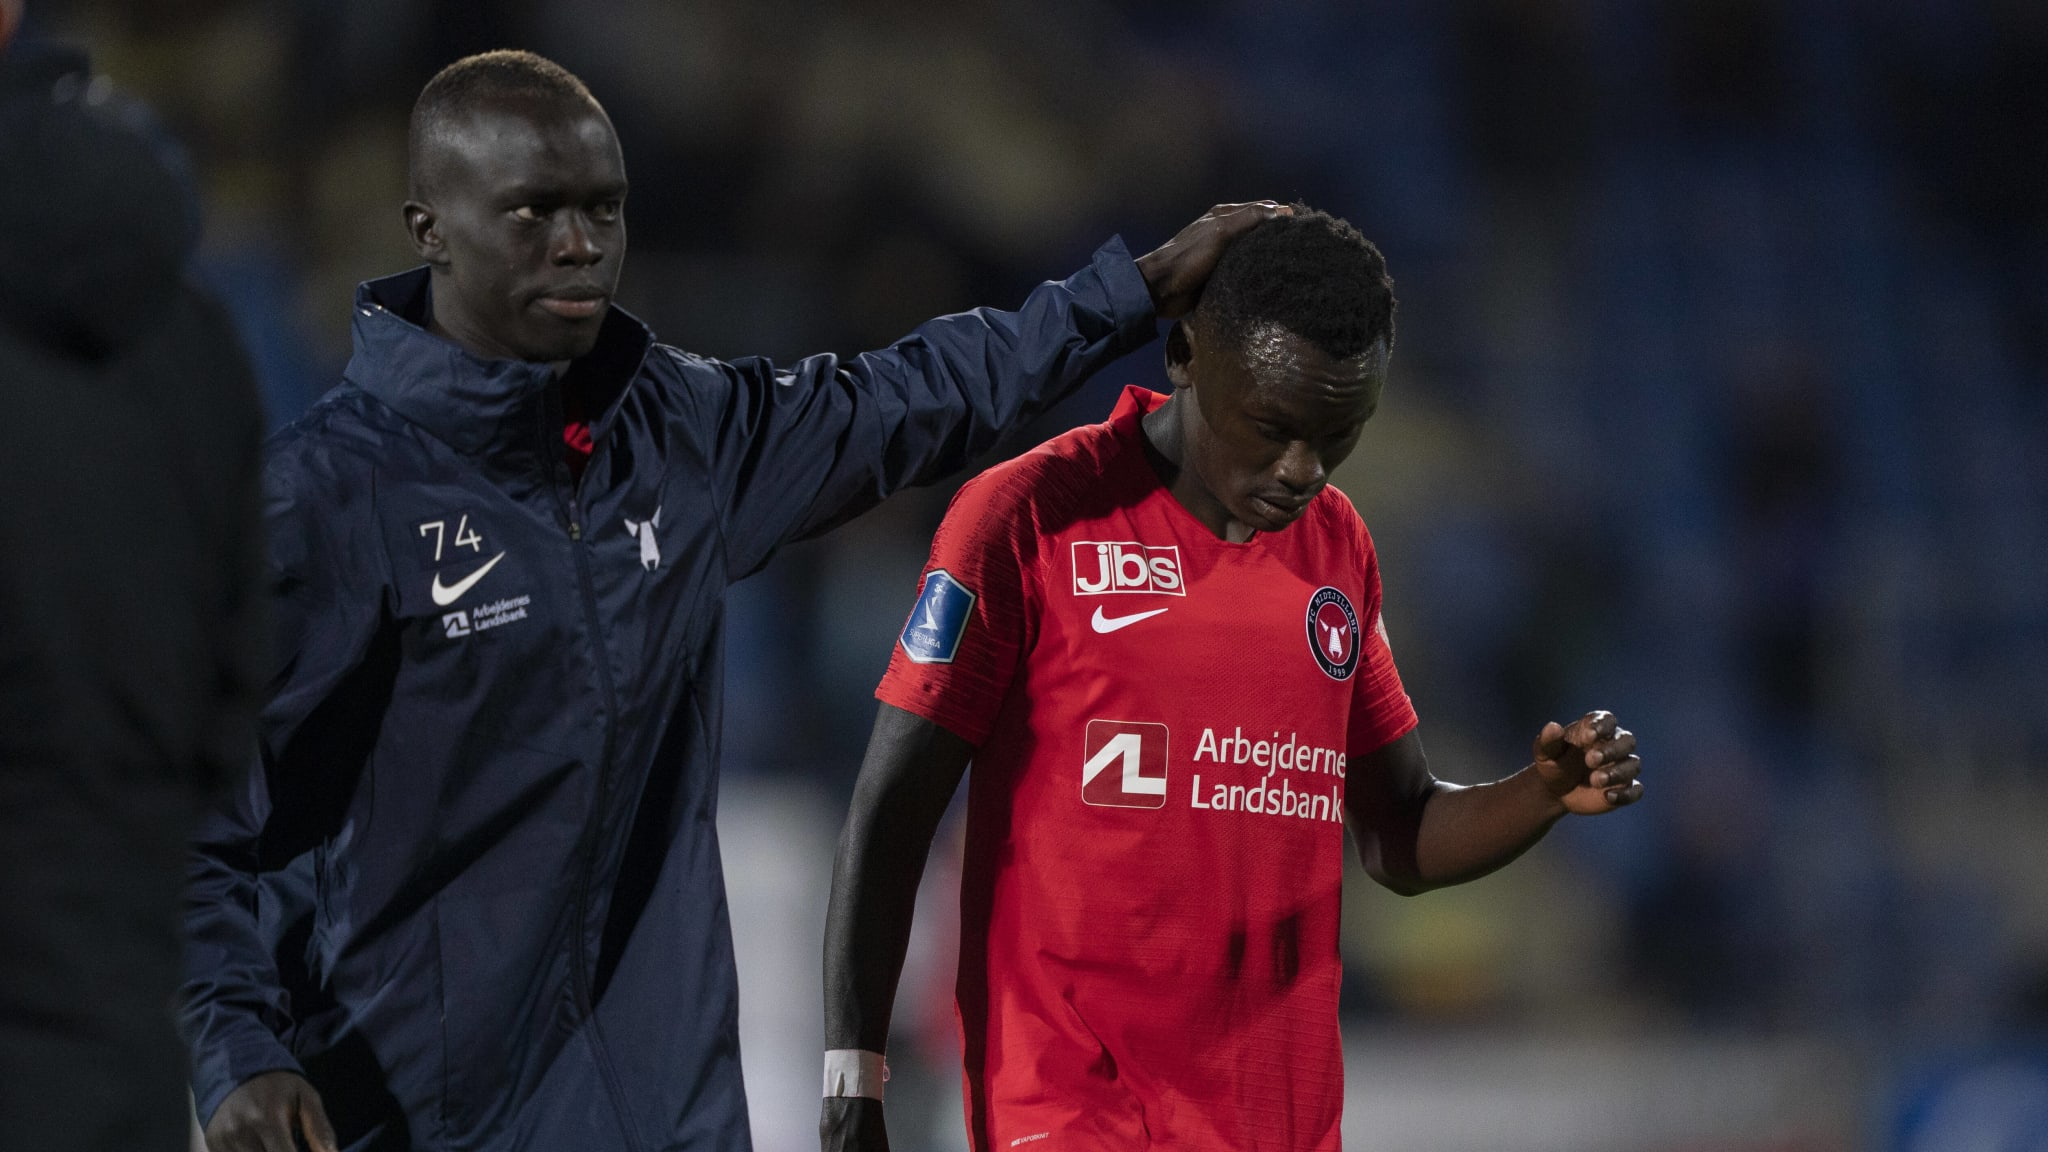 FC Midtjyllands players Awer Mabil and Pione Sisto